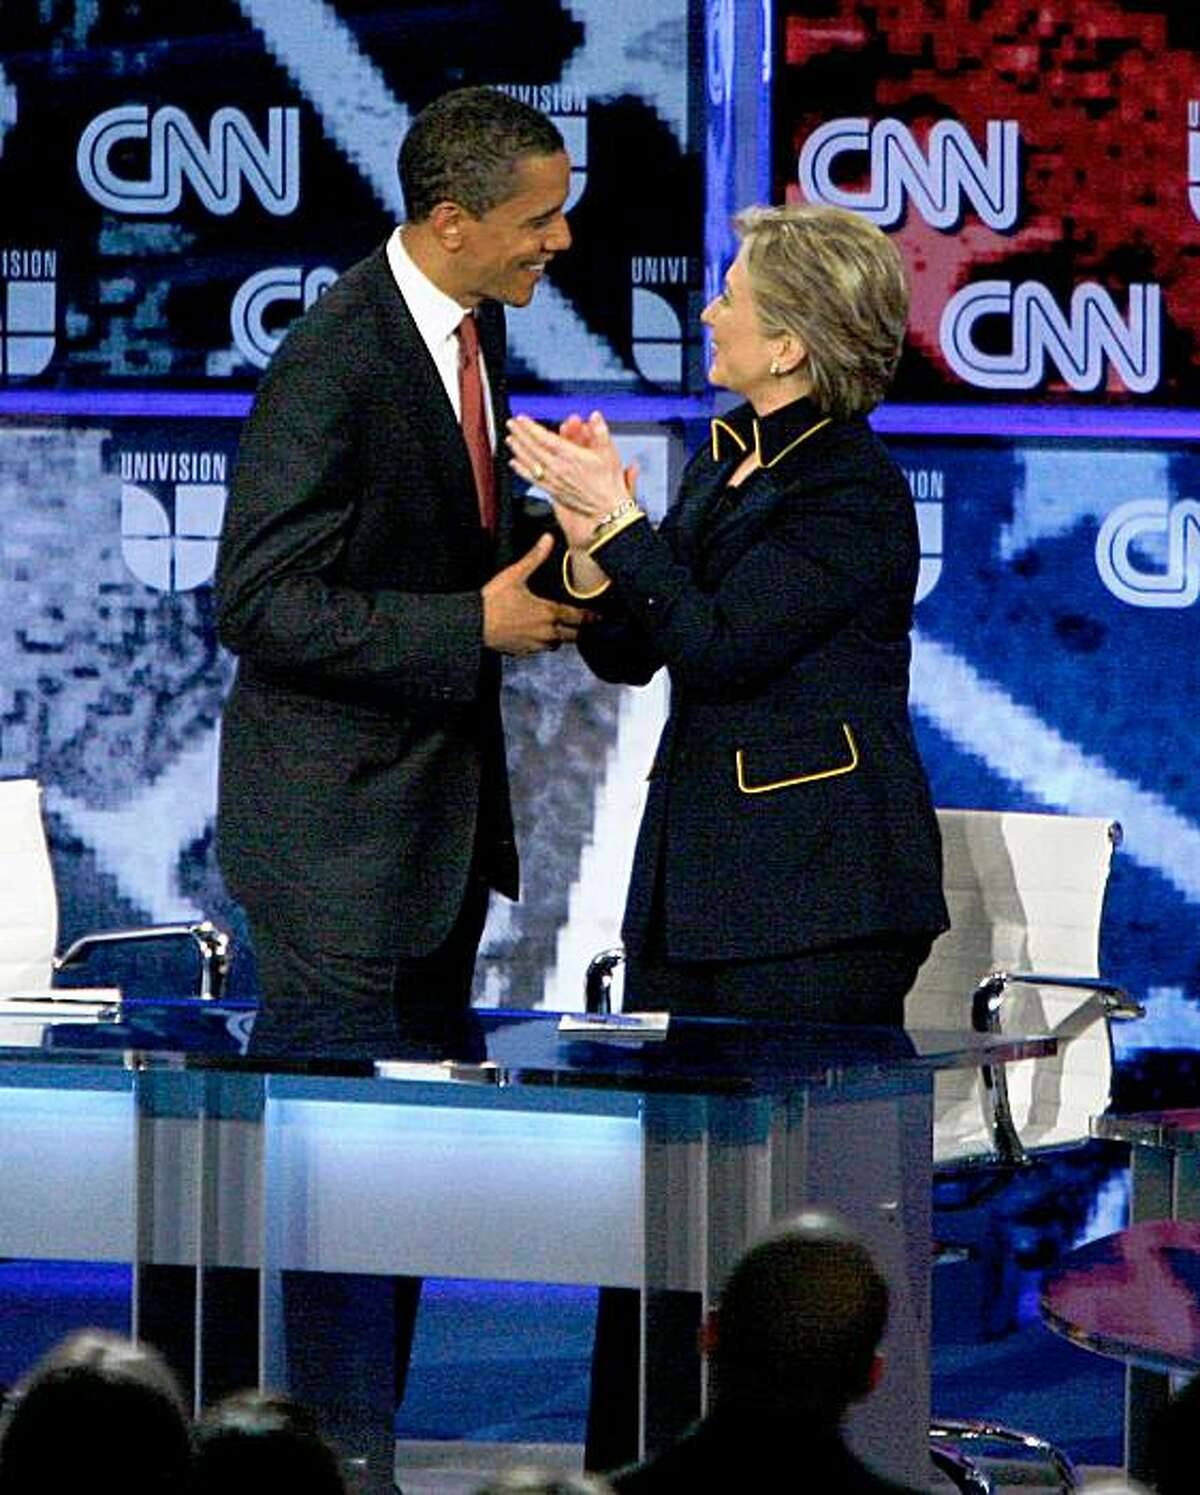 AUSTIN, TX - FEBRUARY 21: Democratic presidential hopefuls U.S. Sen. Barack Obama (D-IL) and U.S. Sen. Hillary Clinton (D-NY) speak after participating in a debate Lyndon B. Johnson Auditorium at the University of Texas on February 21, 2008 in Austin, Texas. The debate was sponsored by the Texas Democratic Party, Univision and CNN and was ahead of the Texas and Ohio primaries being held on March 4th. (Photo by Ben Sklar/Getty Images)